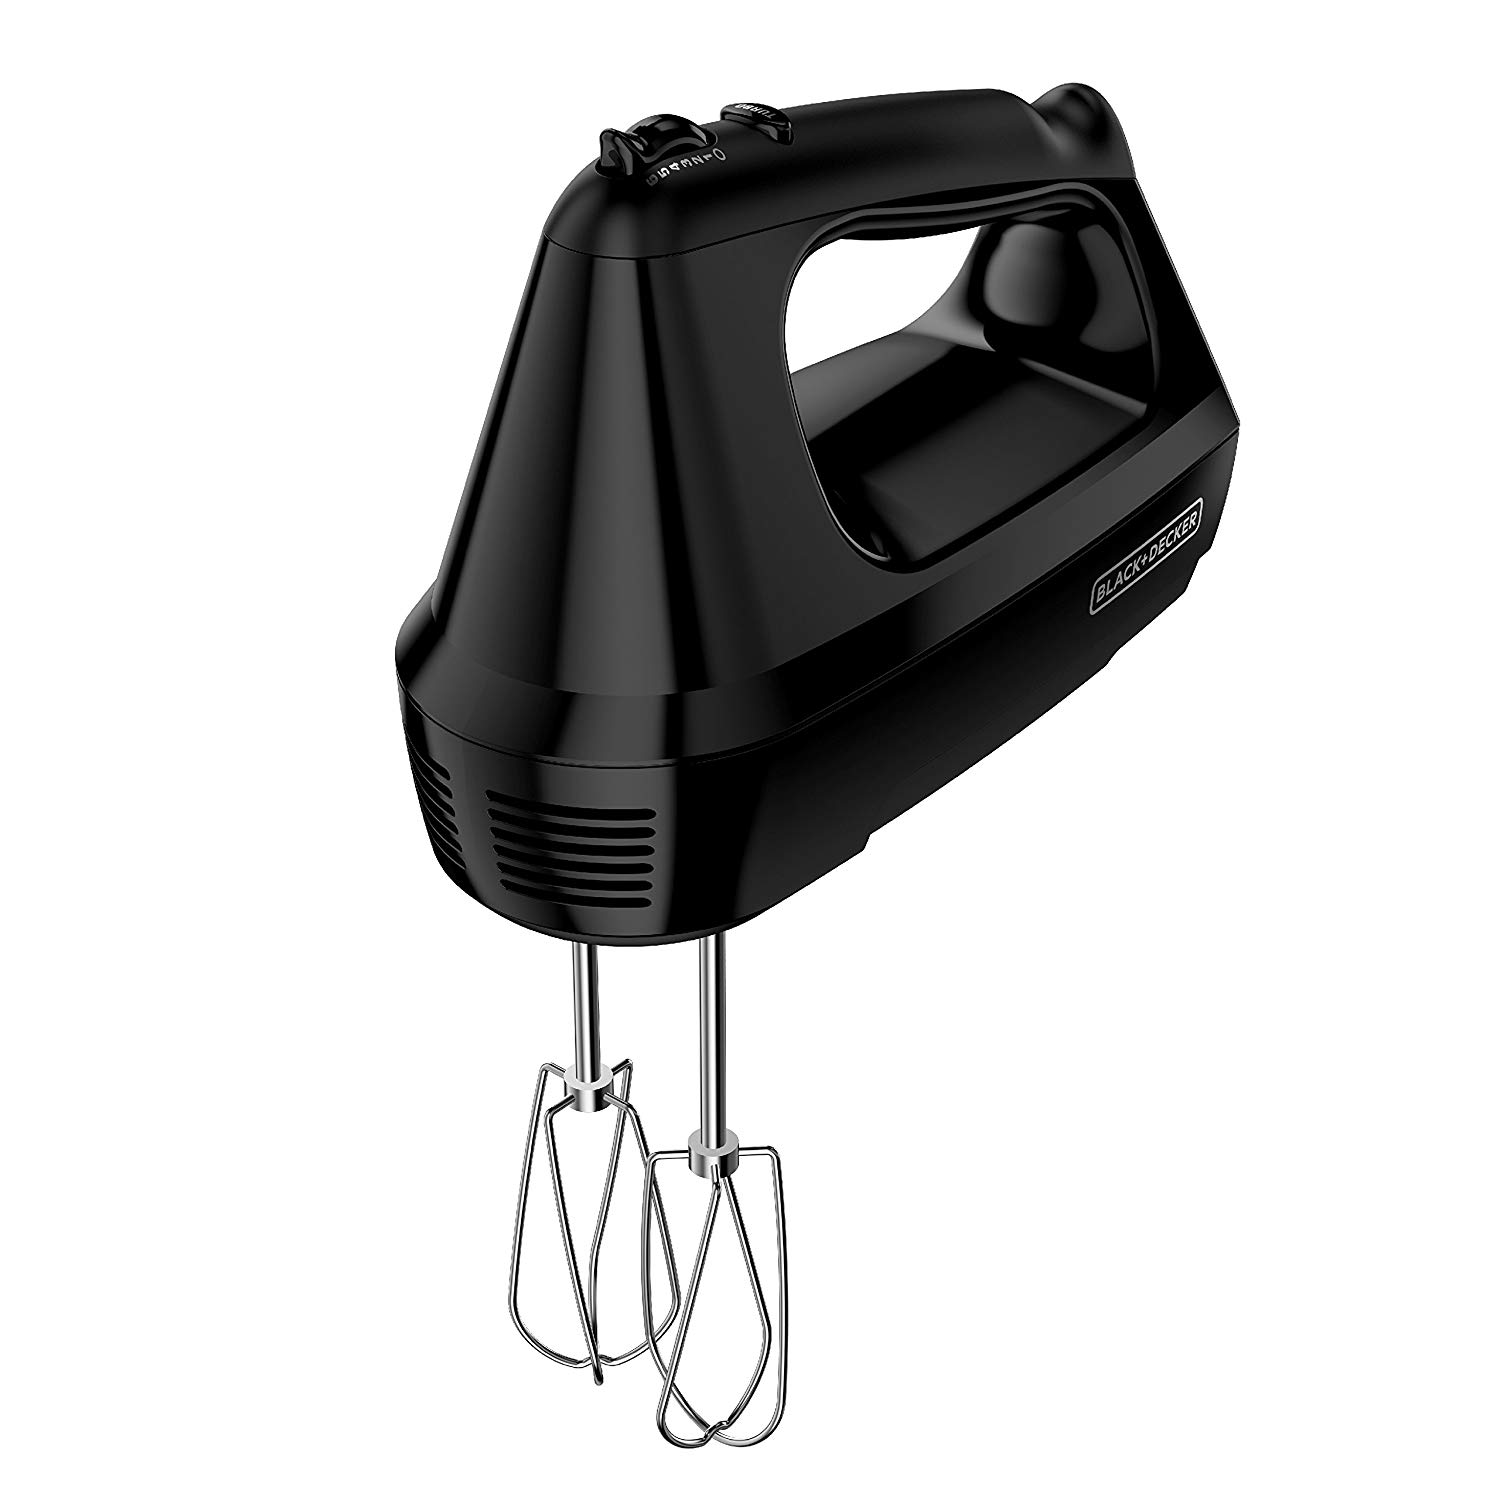 Black+decker 6-speed hand mixer